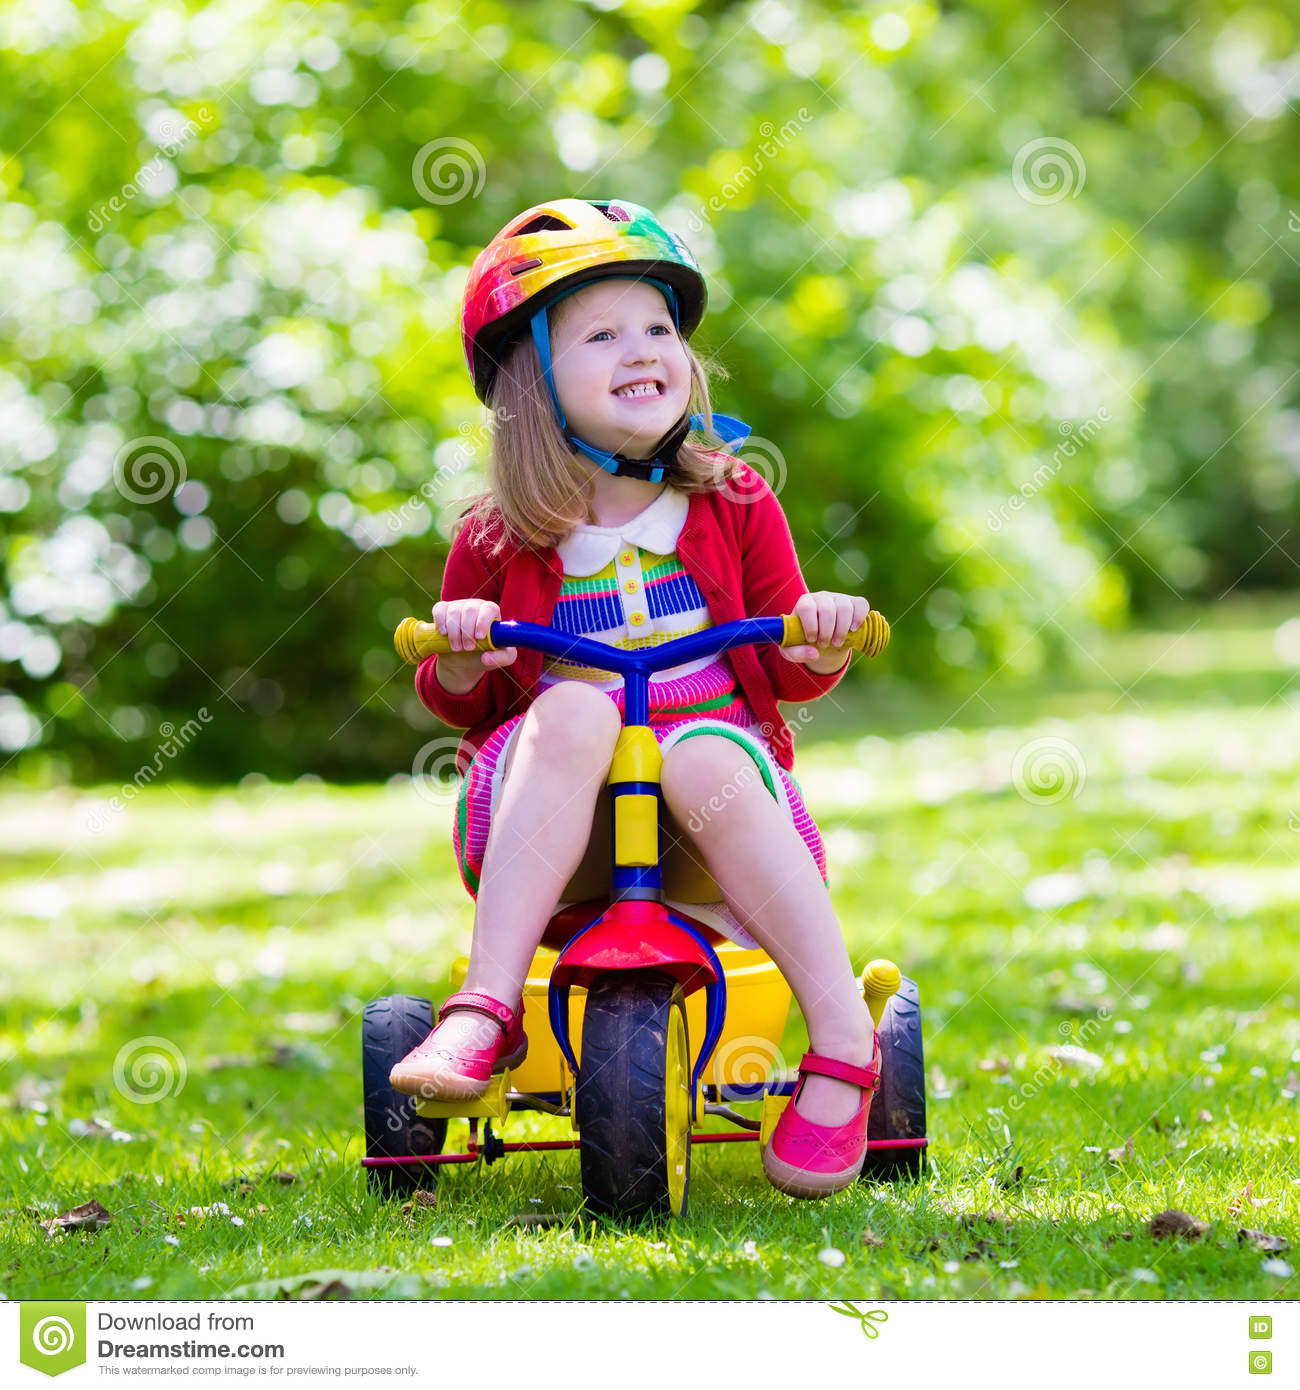 bd7ed3325f6 Little Girl Riding A Tricycle Stock Image - Image of preschool ...